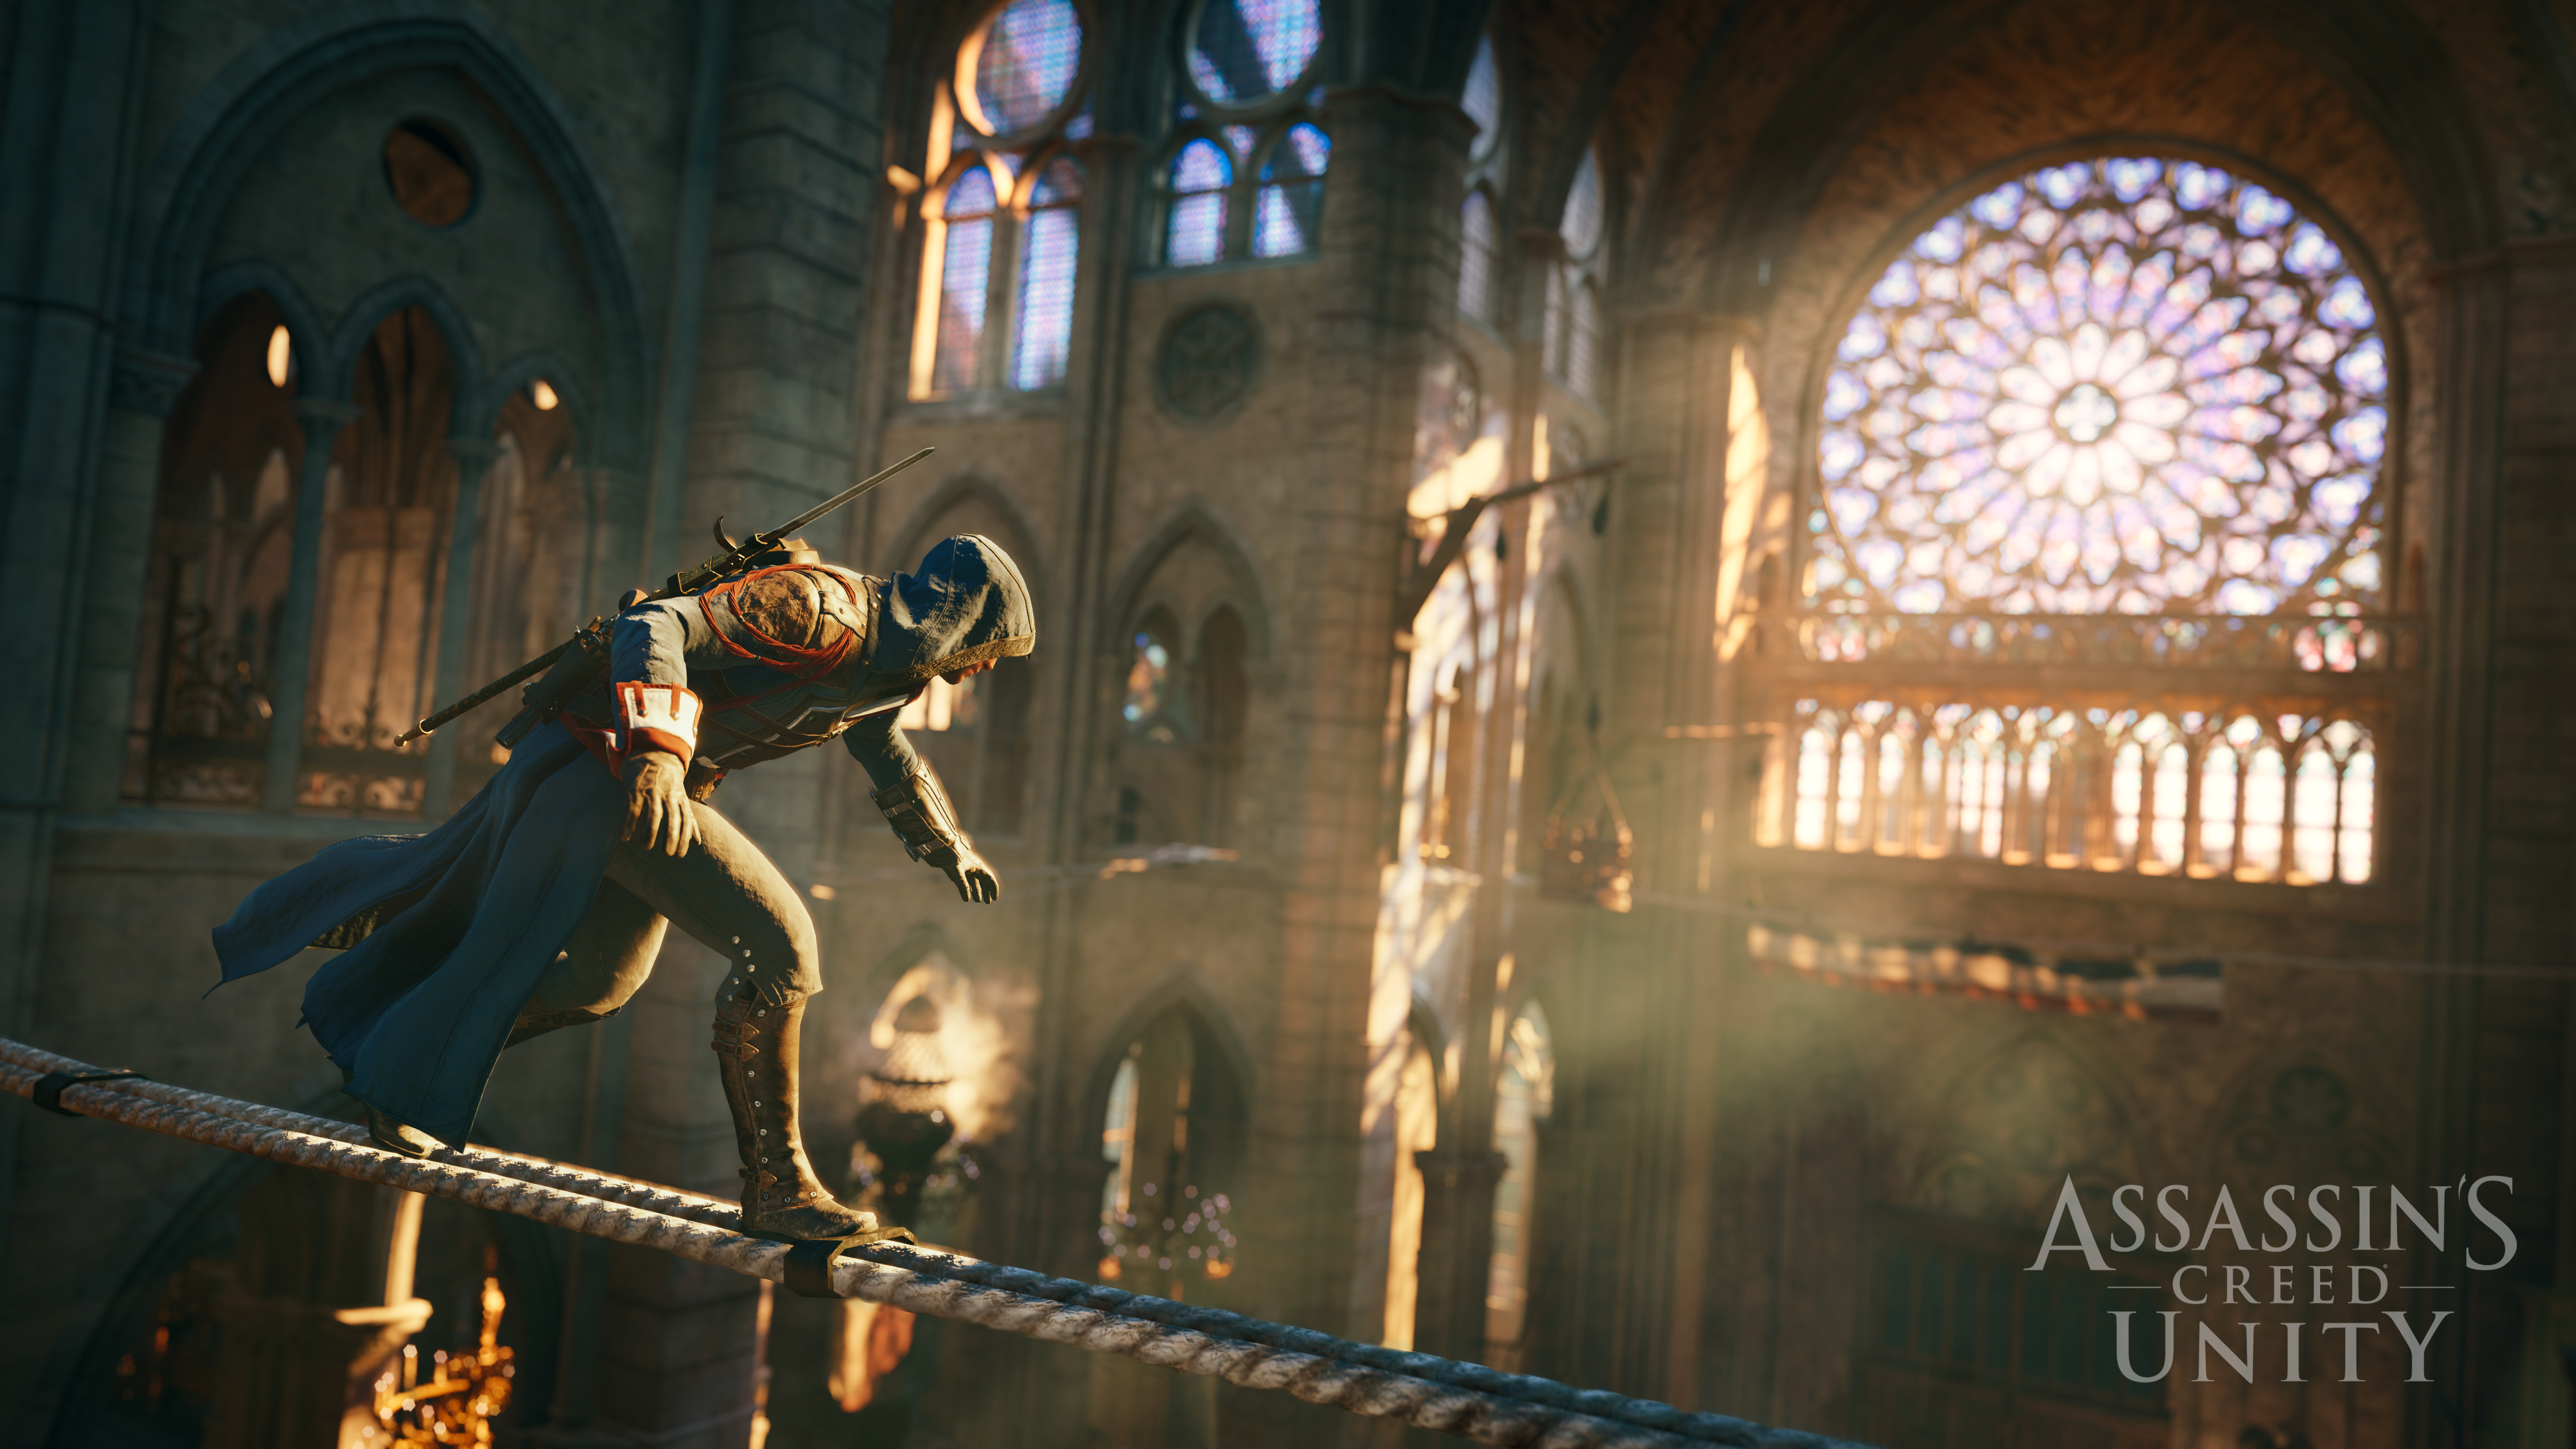 Assassin's Creed Unity Patch 4 Is 6.7 GB, Arrives Today On Xbox One and PS4